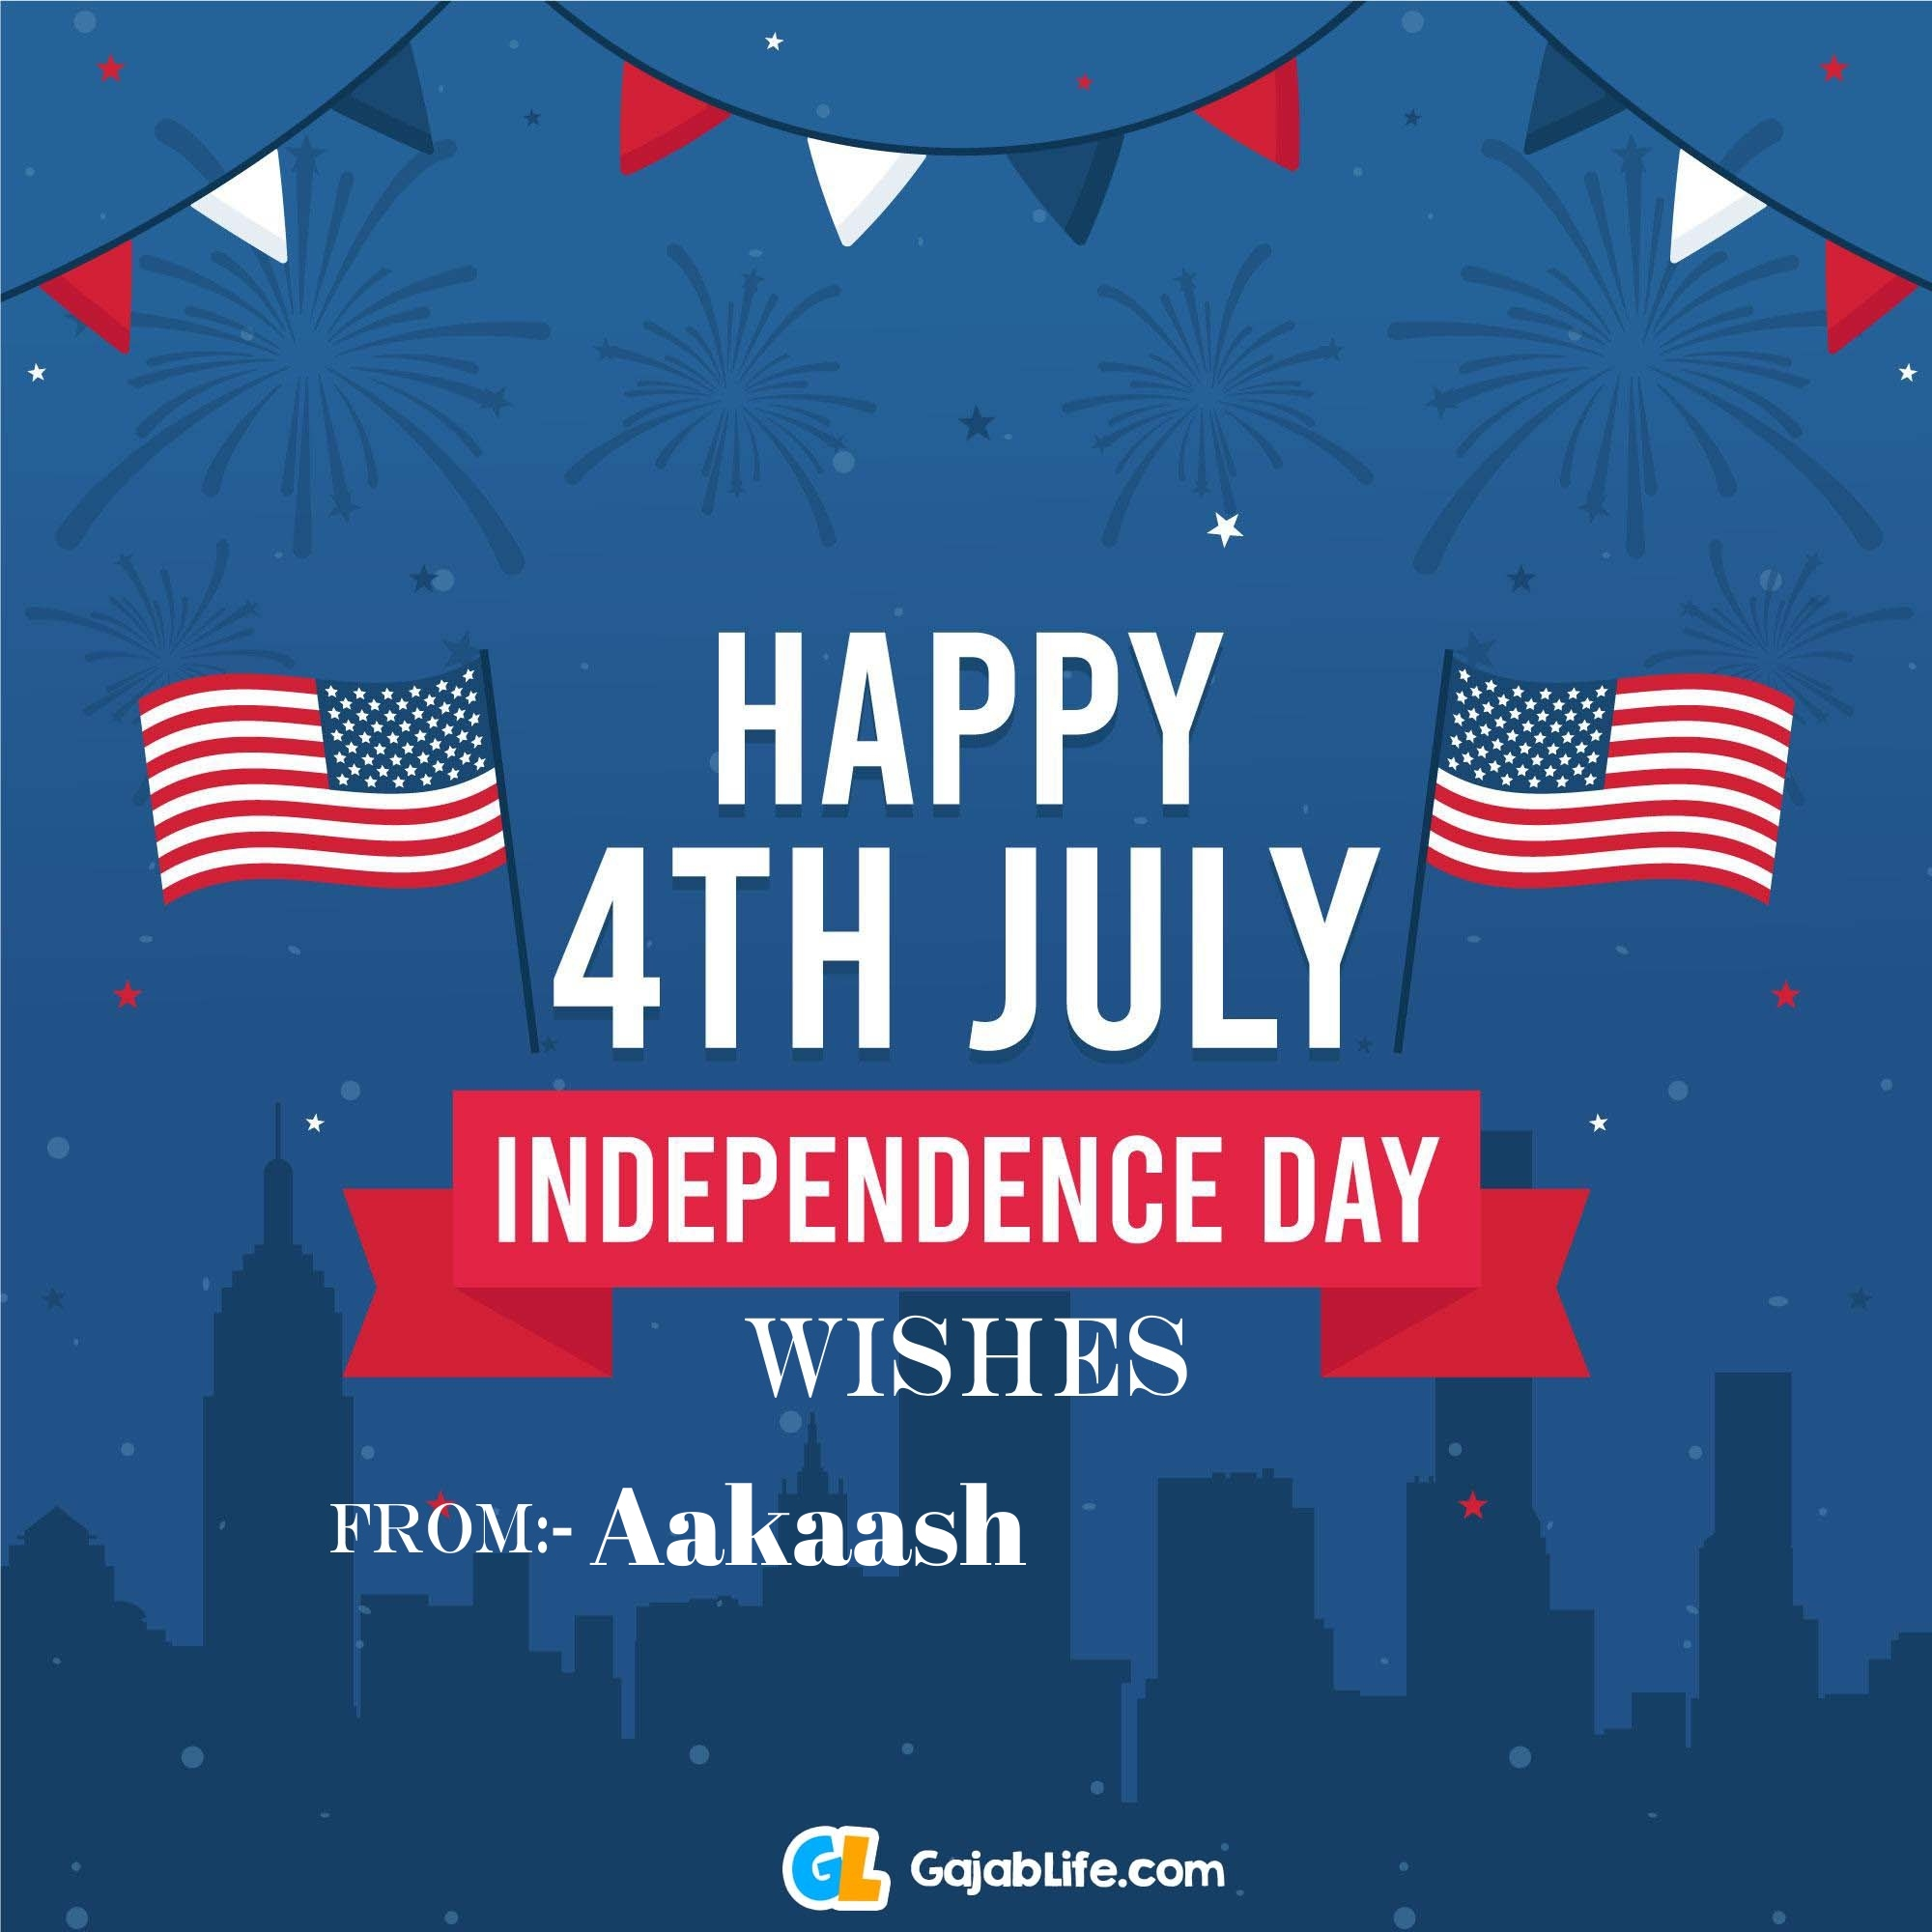 Aakaash happy independence day united states of america images